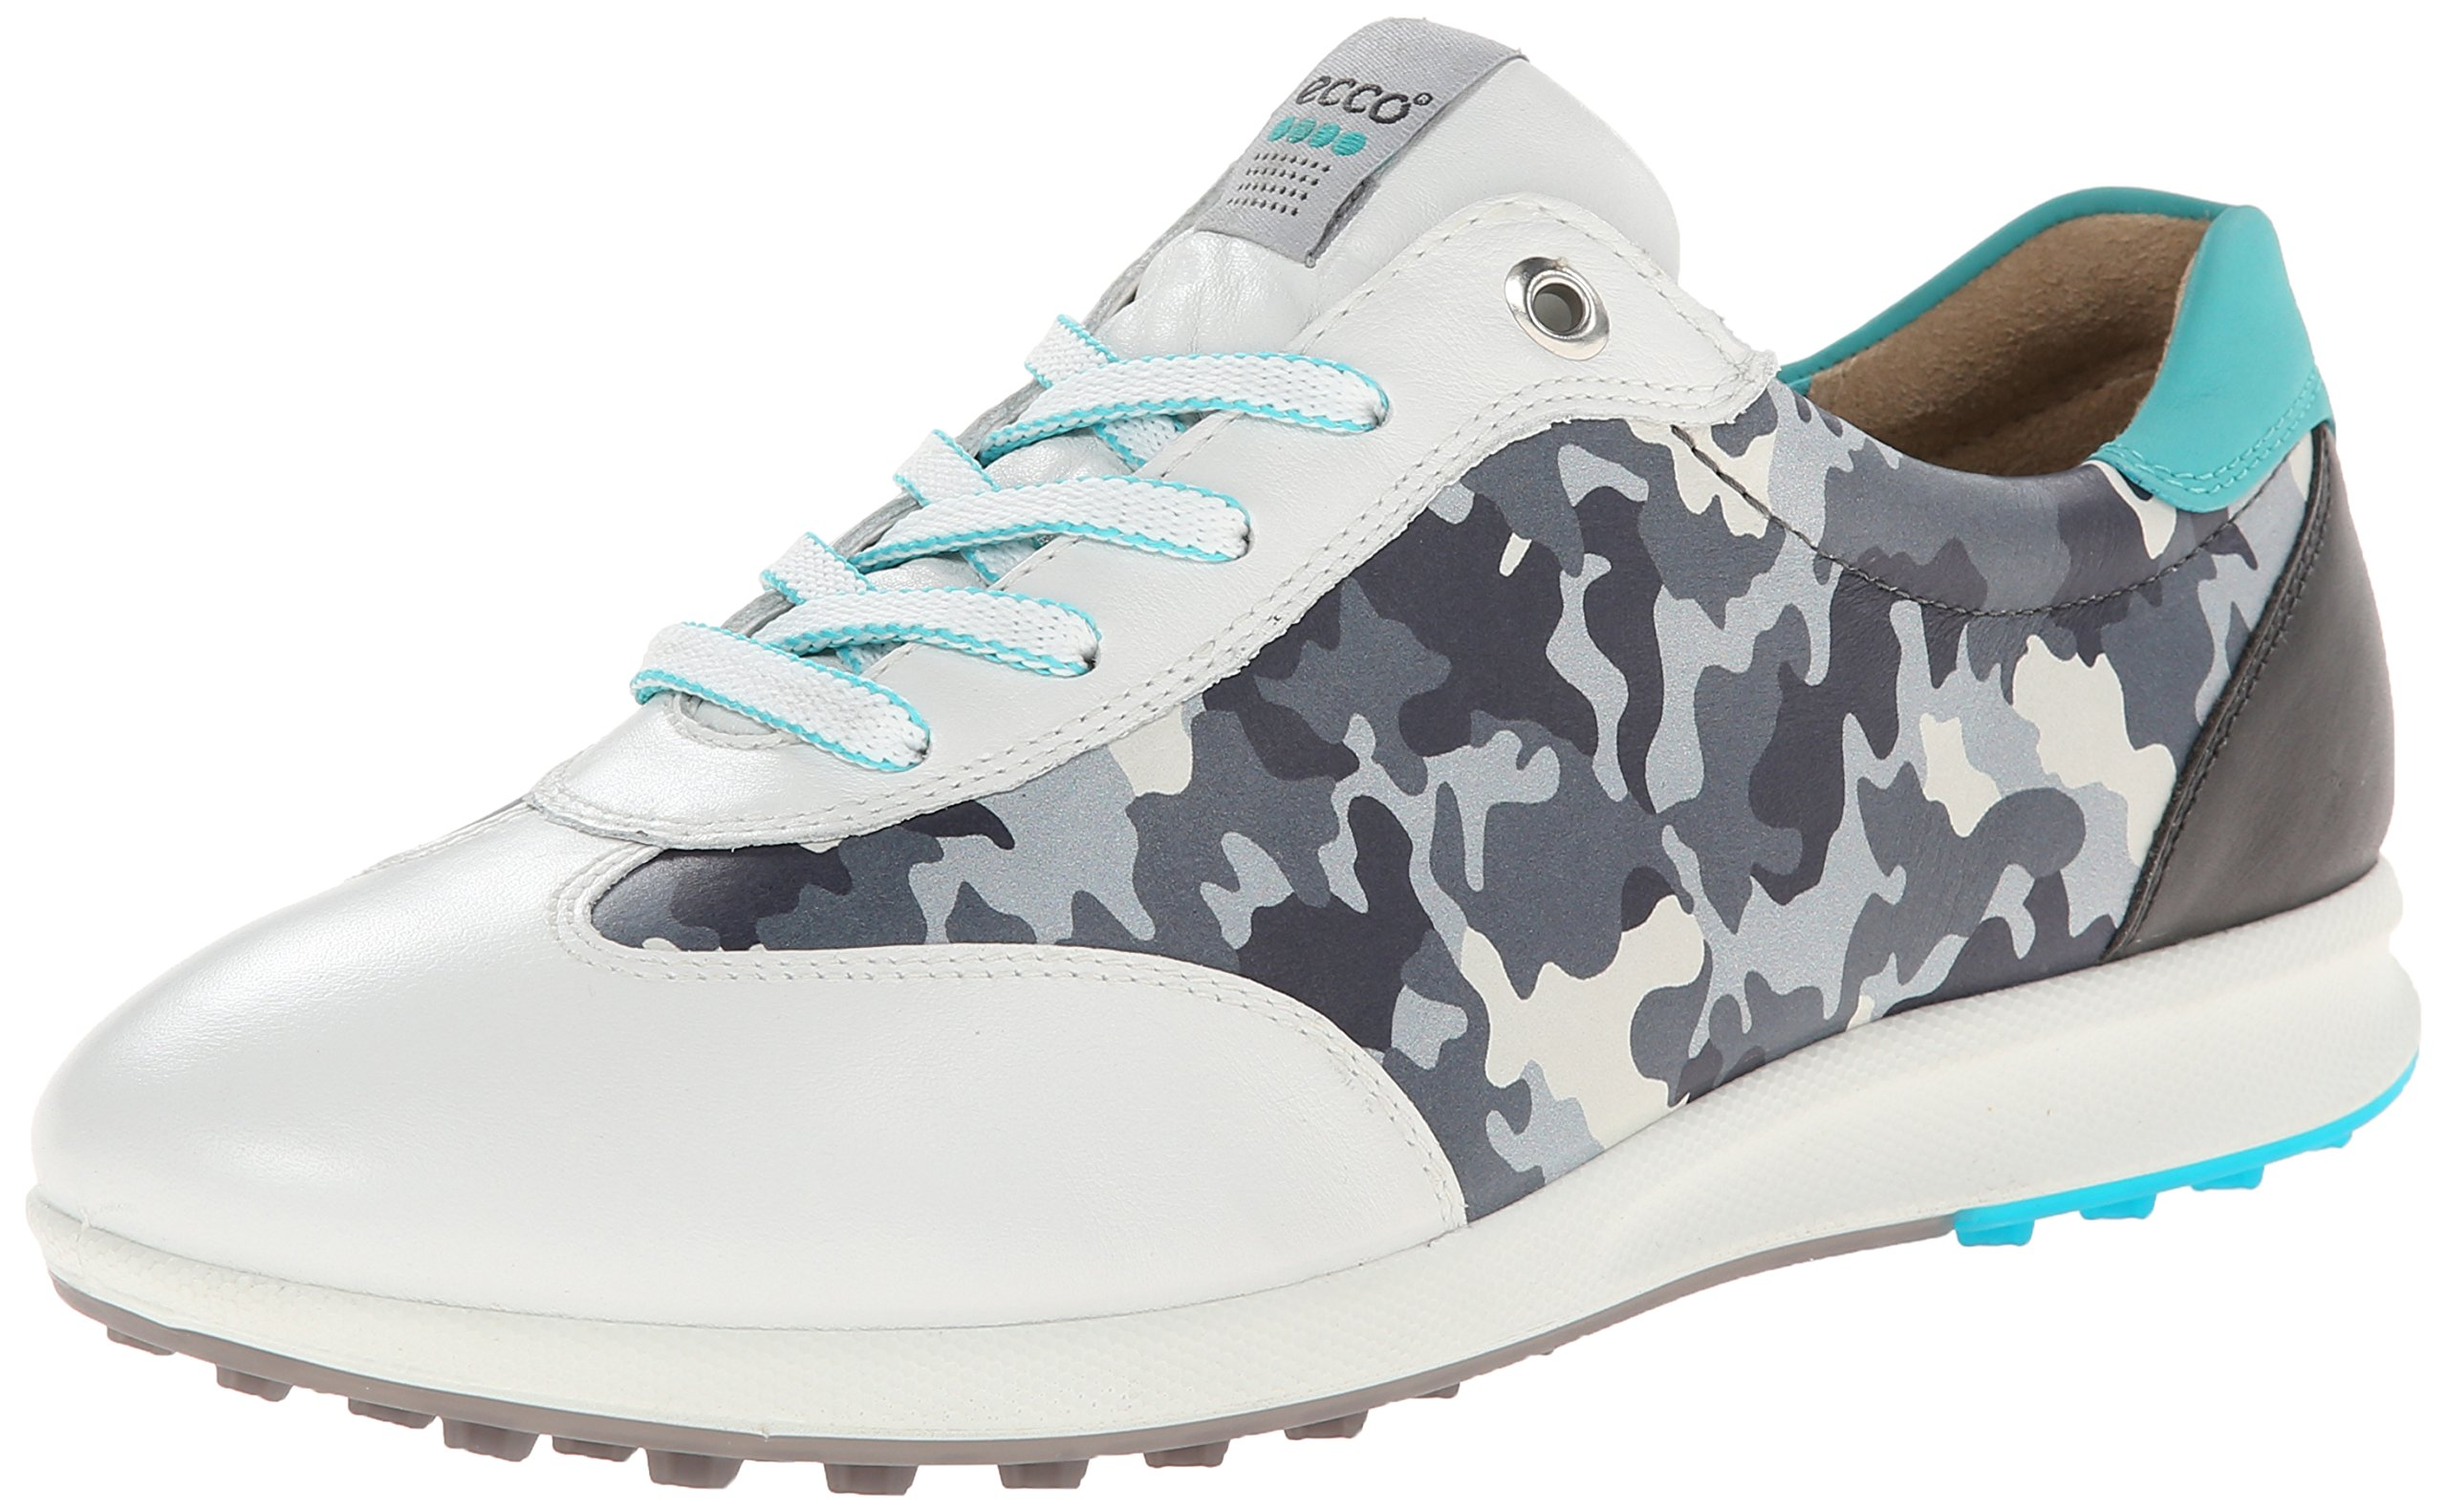 ECCO Women's Street EVO One Camo Golf Shoe,White/Turquoise,40 EU/9-9.5 M US